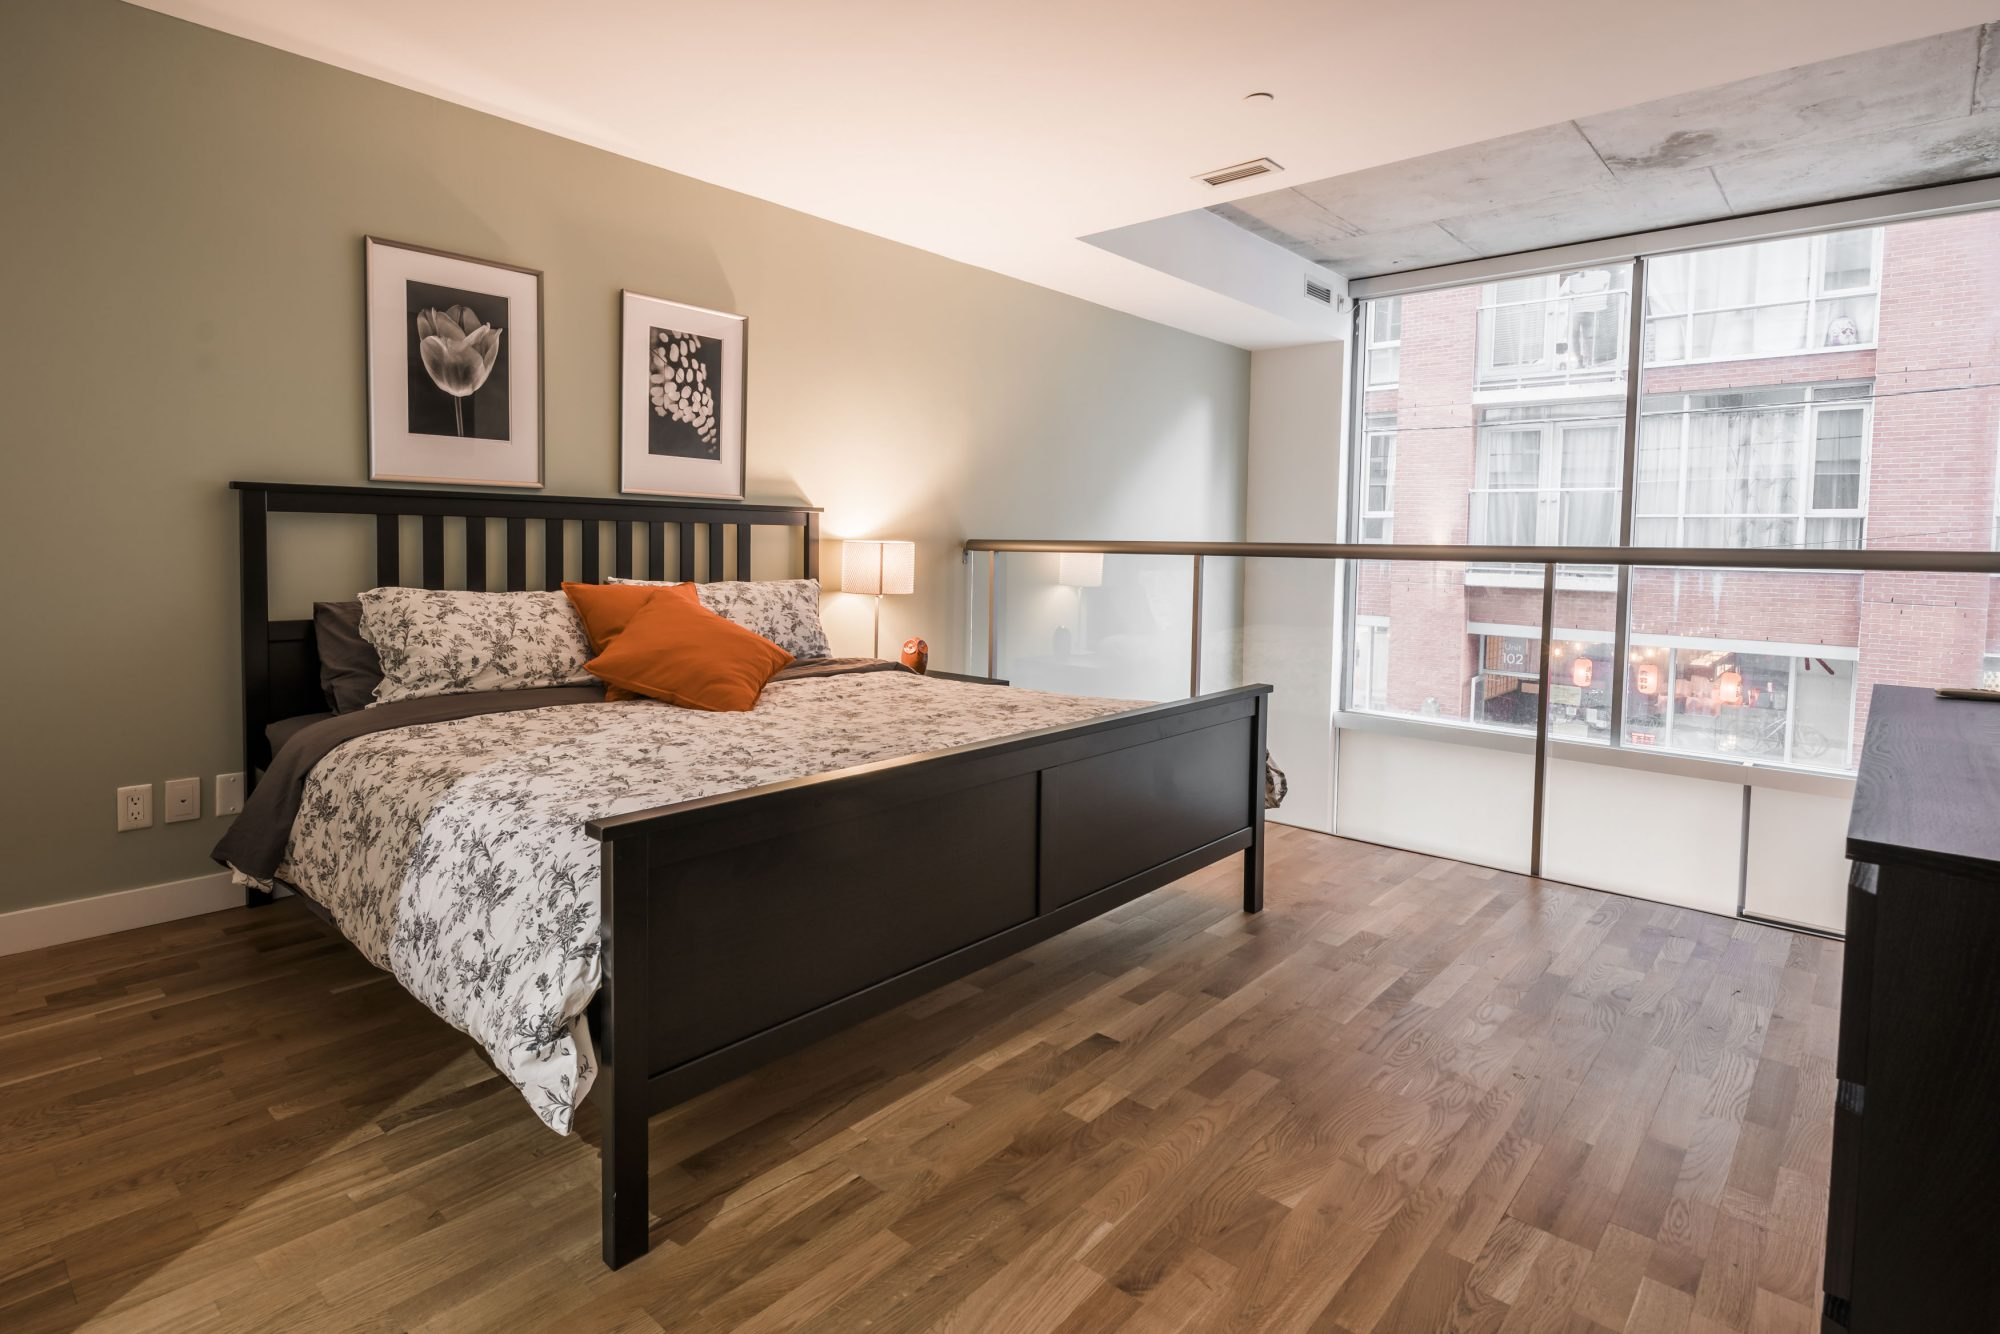 toronto-apartment-for-rent-25-oxley-street-4